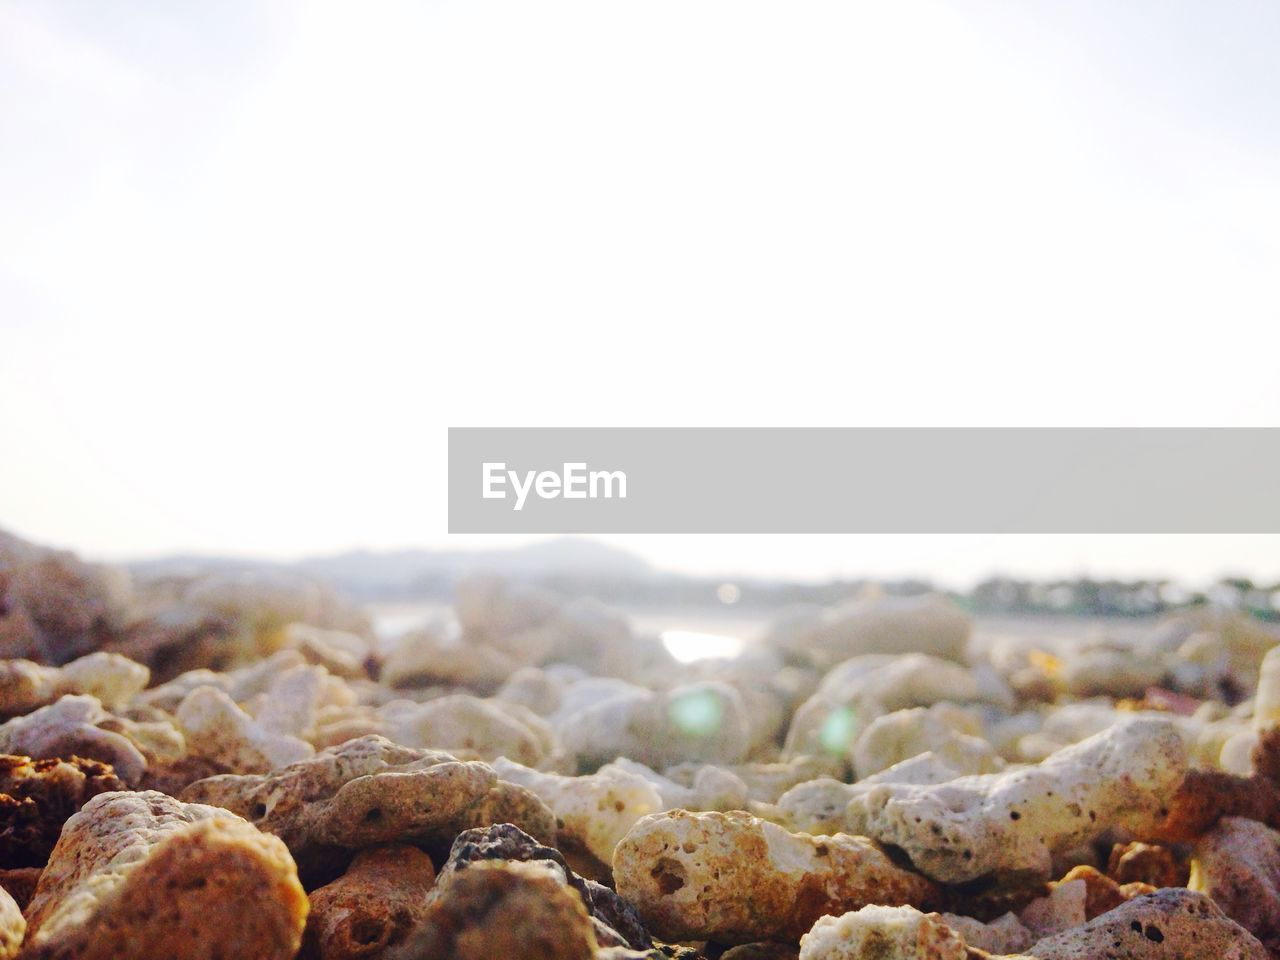 no people, food and drink, food, clear sky, nature, day, outdoors, beauty in nature, sky, freshness, close-up, pebble beach